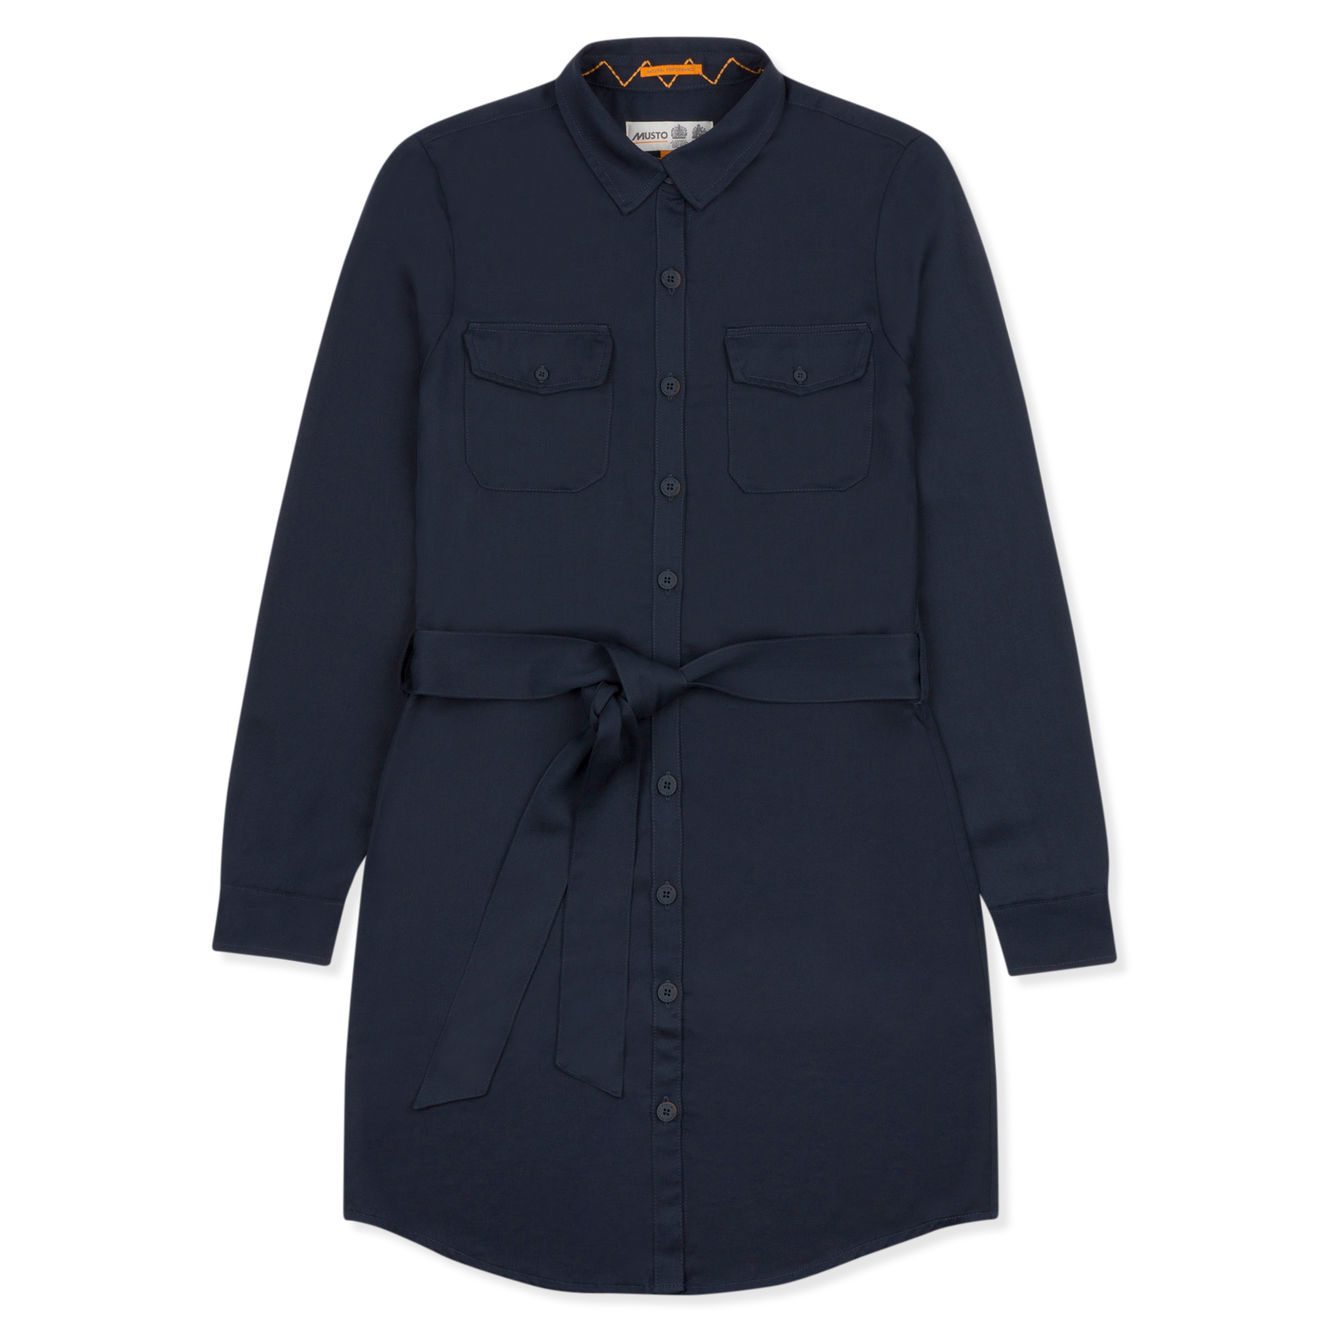 REGATTA SHIRT DRESS FW